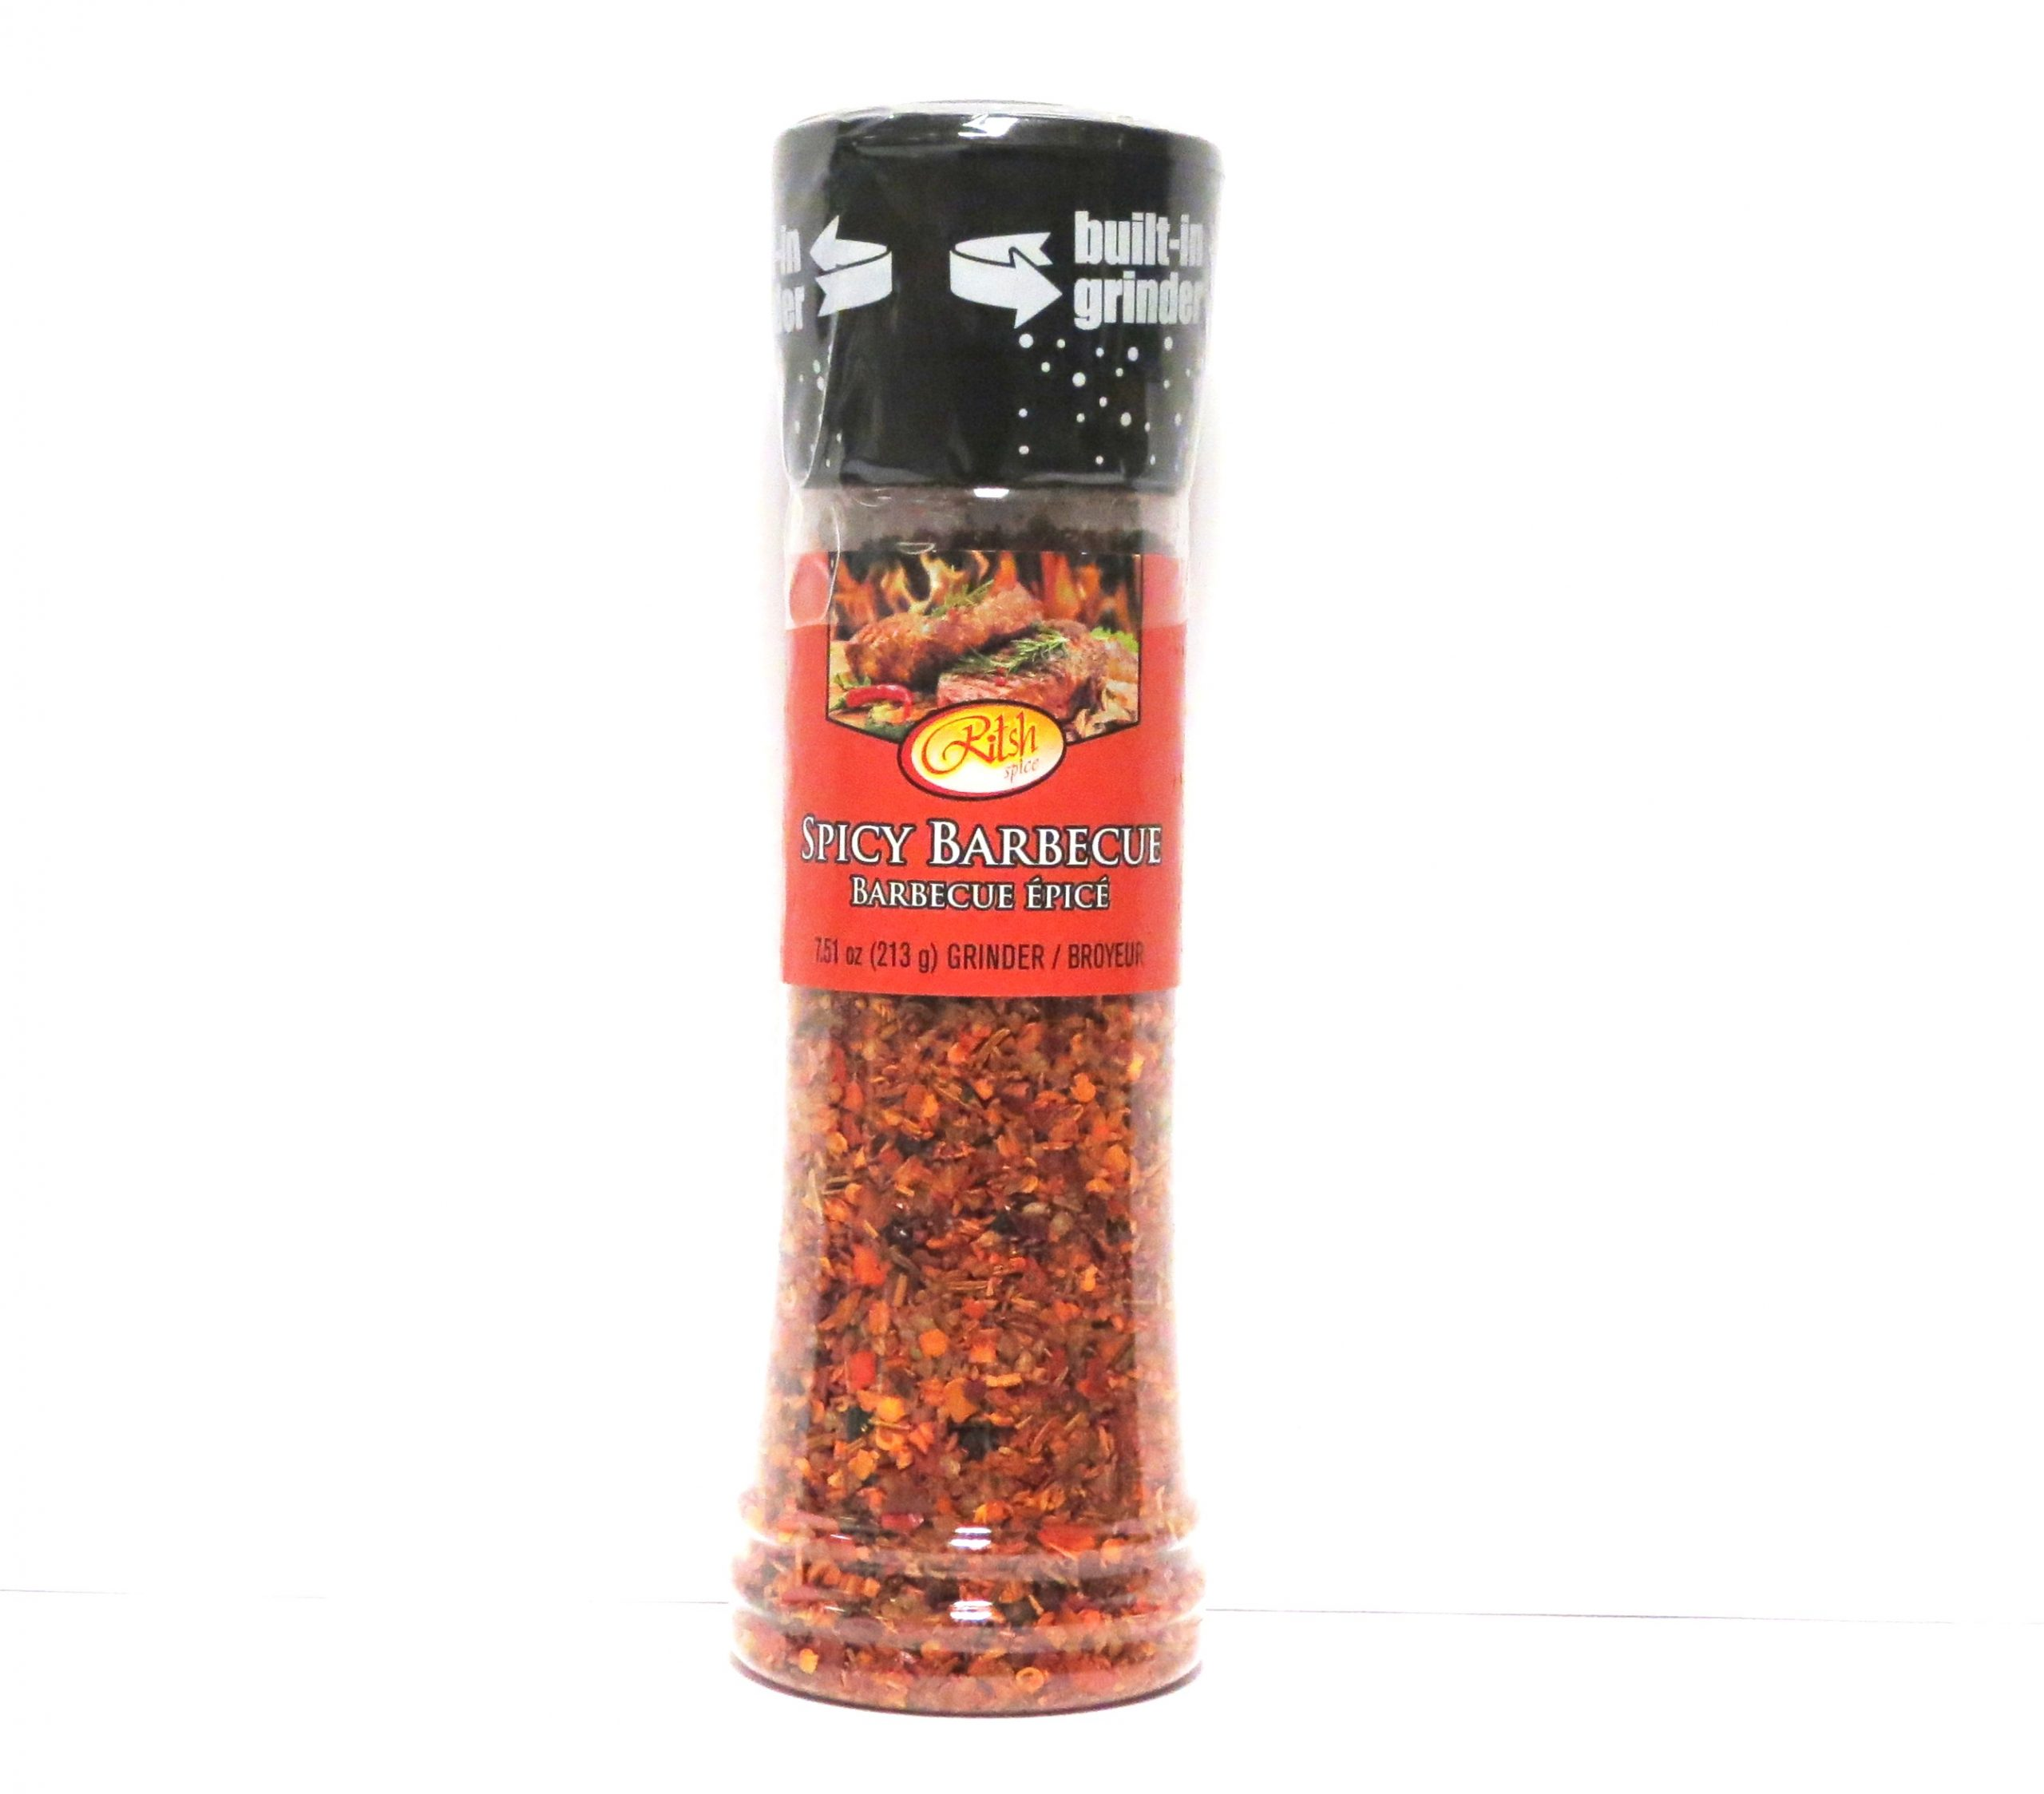 SPICY BARBECUE